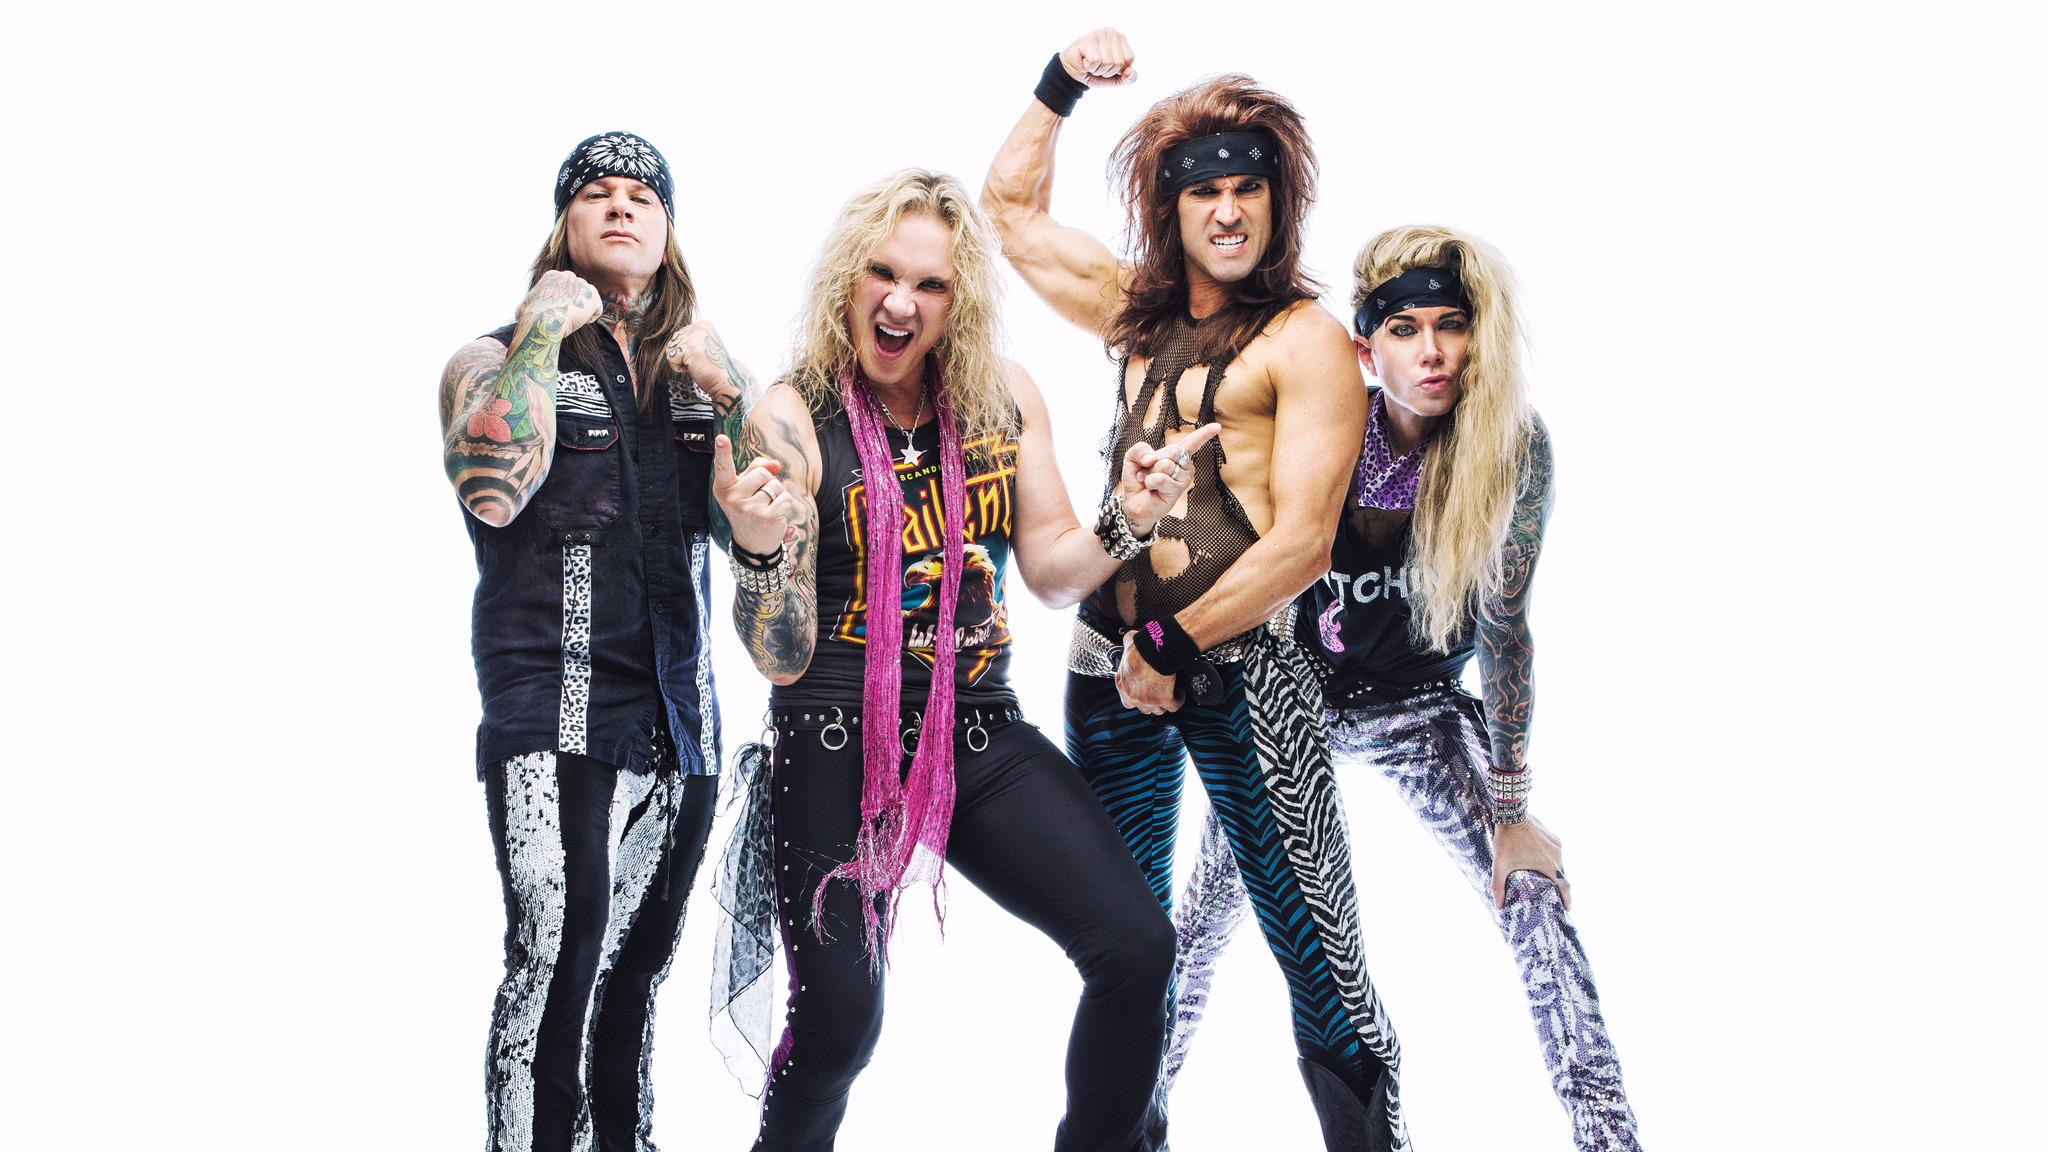 101.5 KGB Presents Steel Panther at House of Blues San Diego